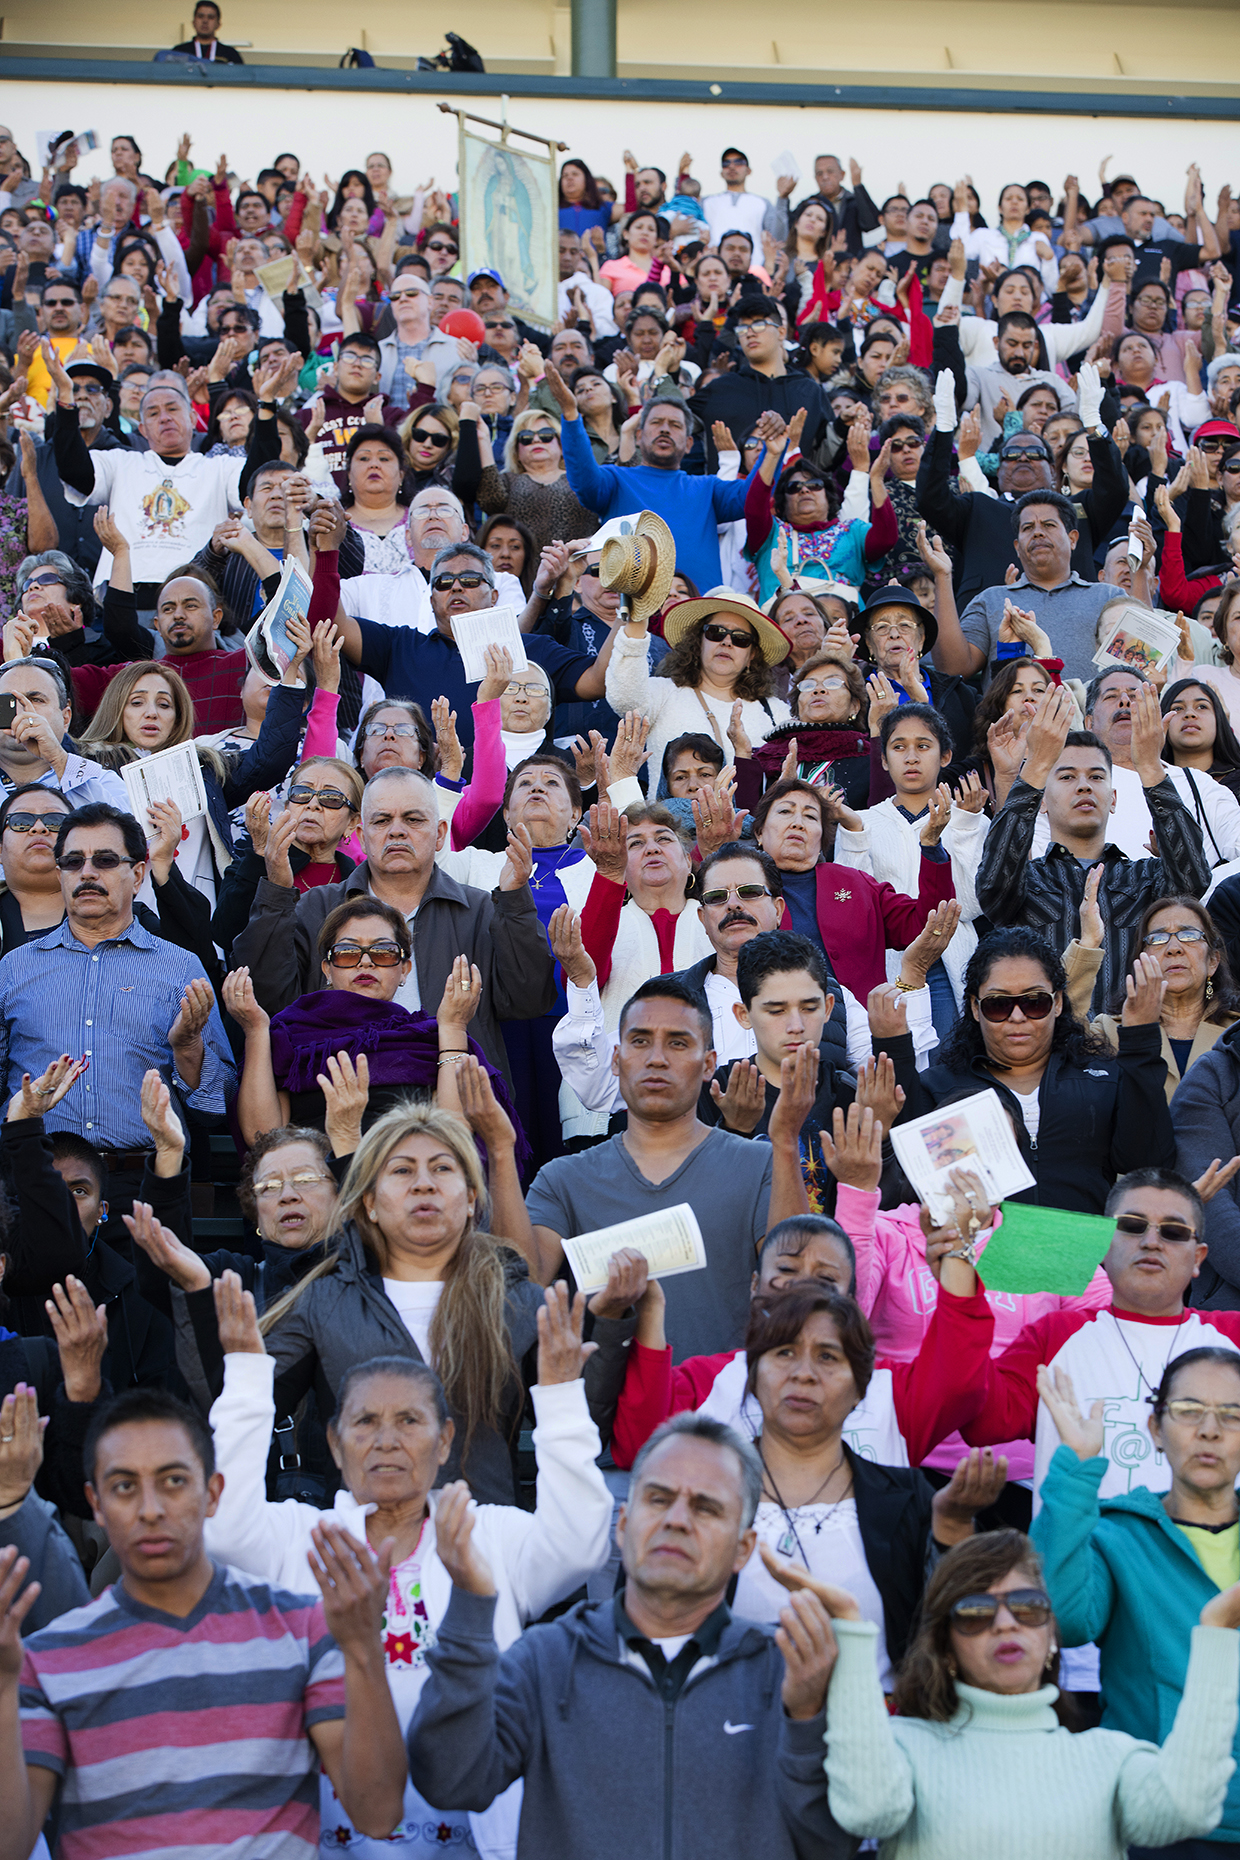 procession-mass-virgen-guadalupe-48